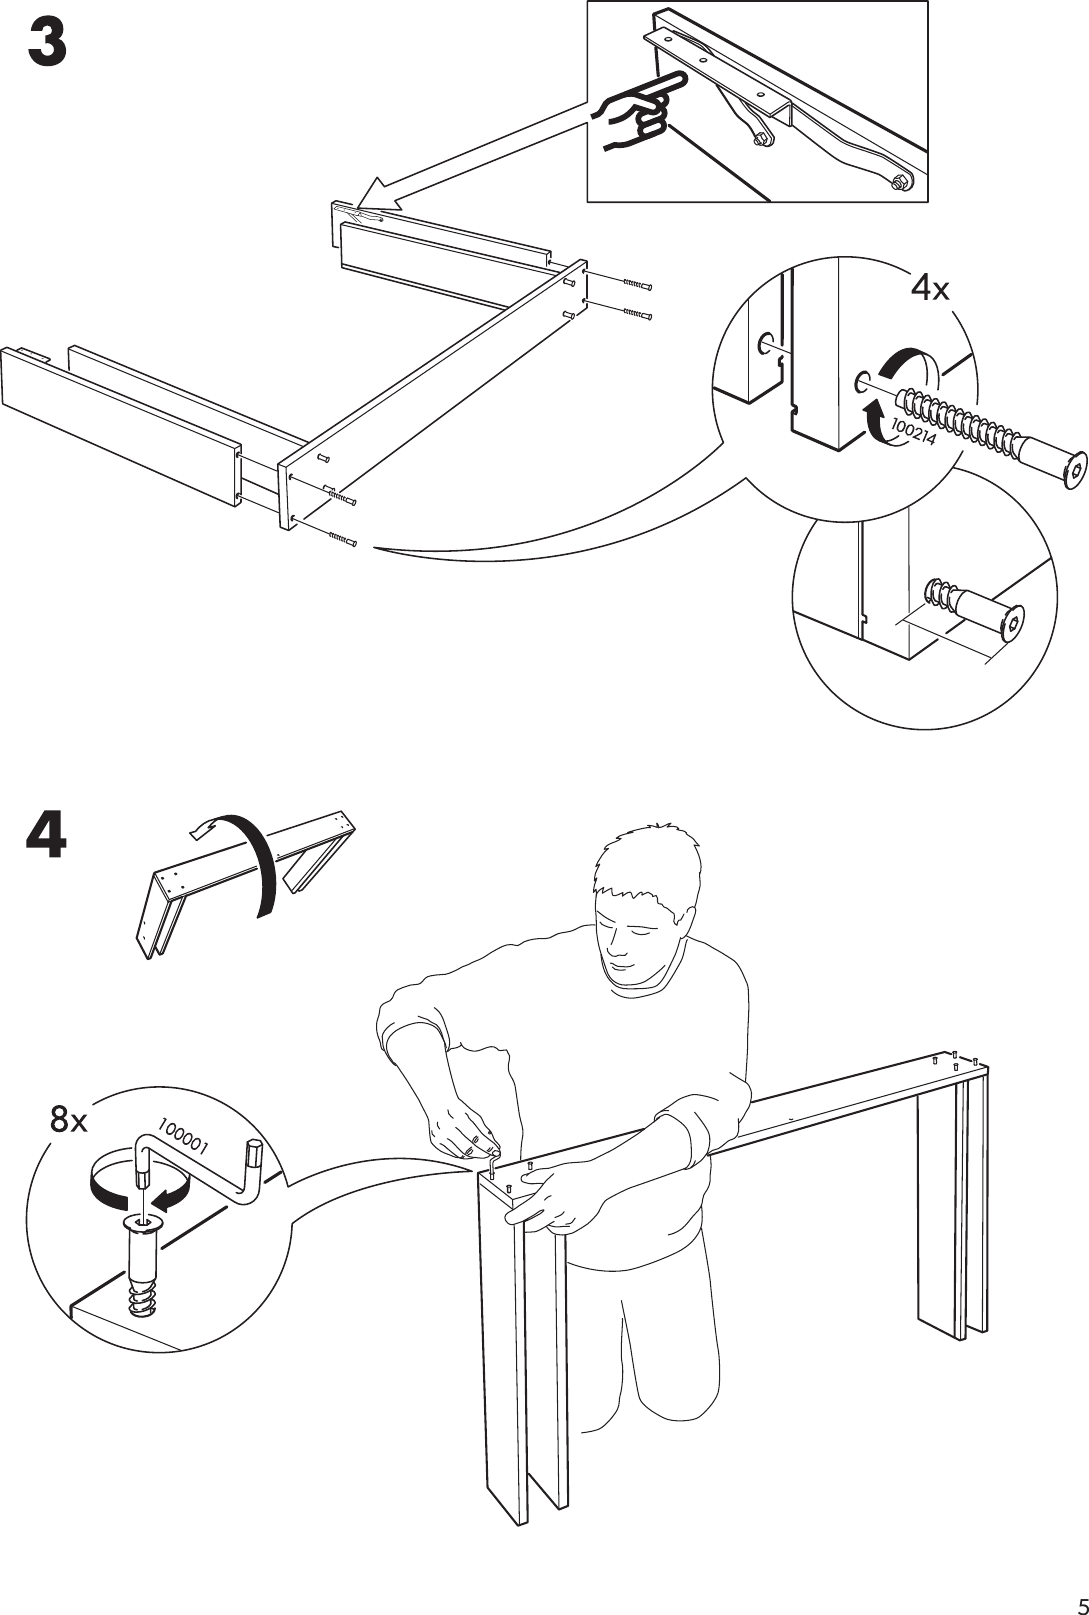 Ikea Bunk Bed Instruction Manual